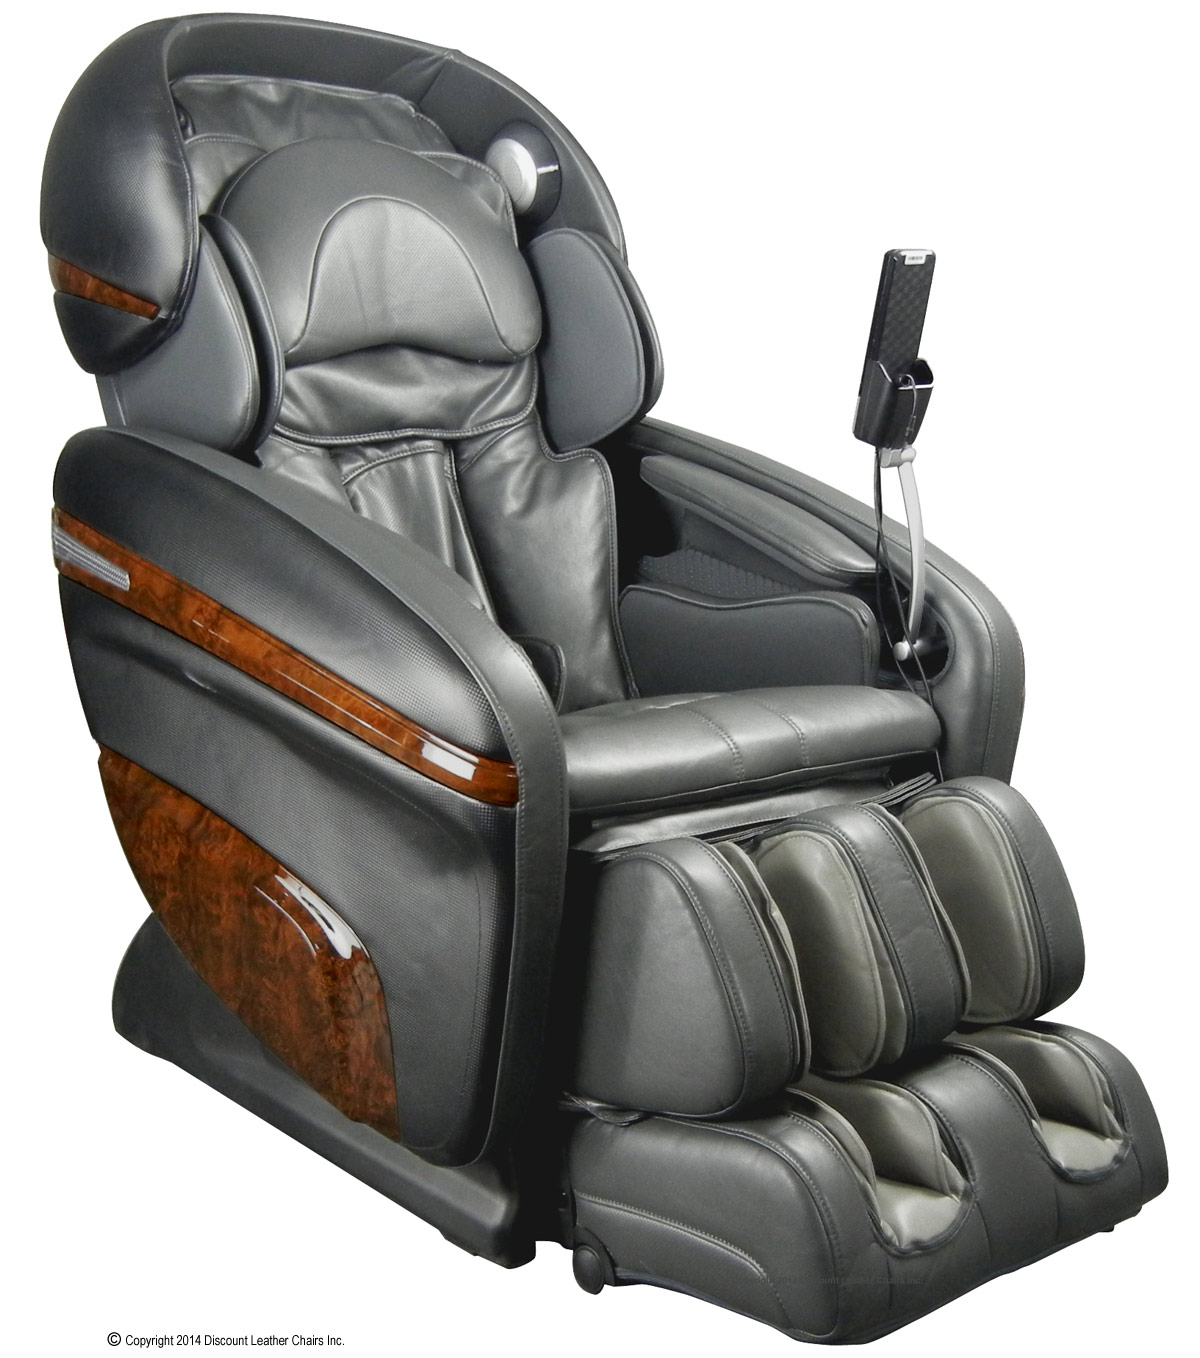 Top Rated Massage Chairs Osaki Os 3d Dreamer Pro 2 Stage Zero Gravity Massage Chair